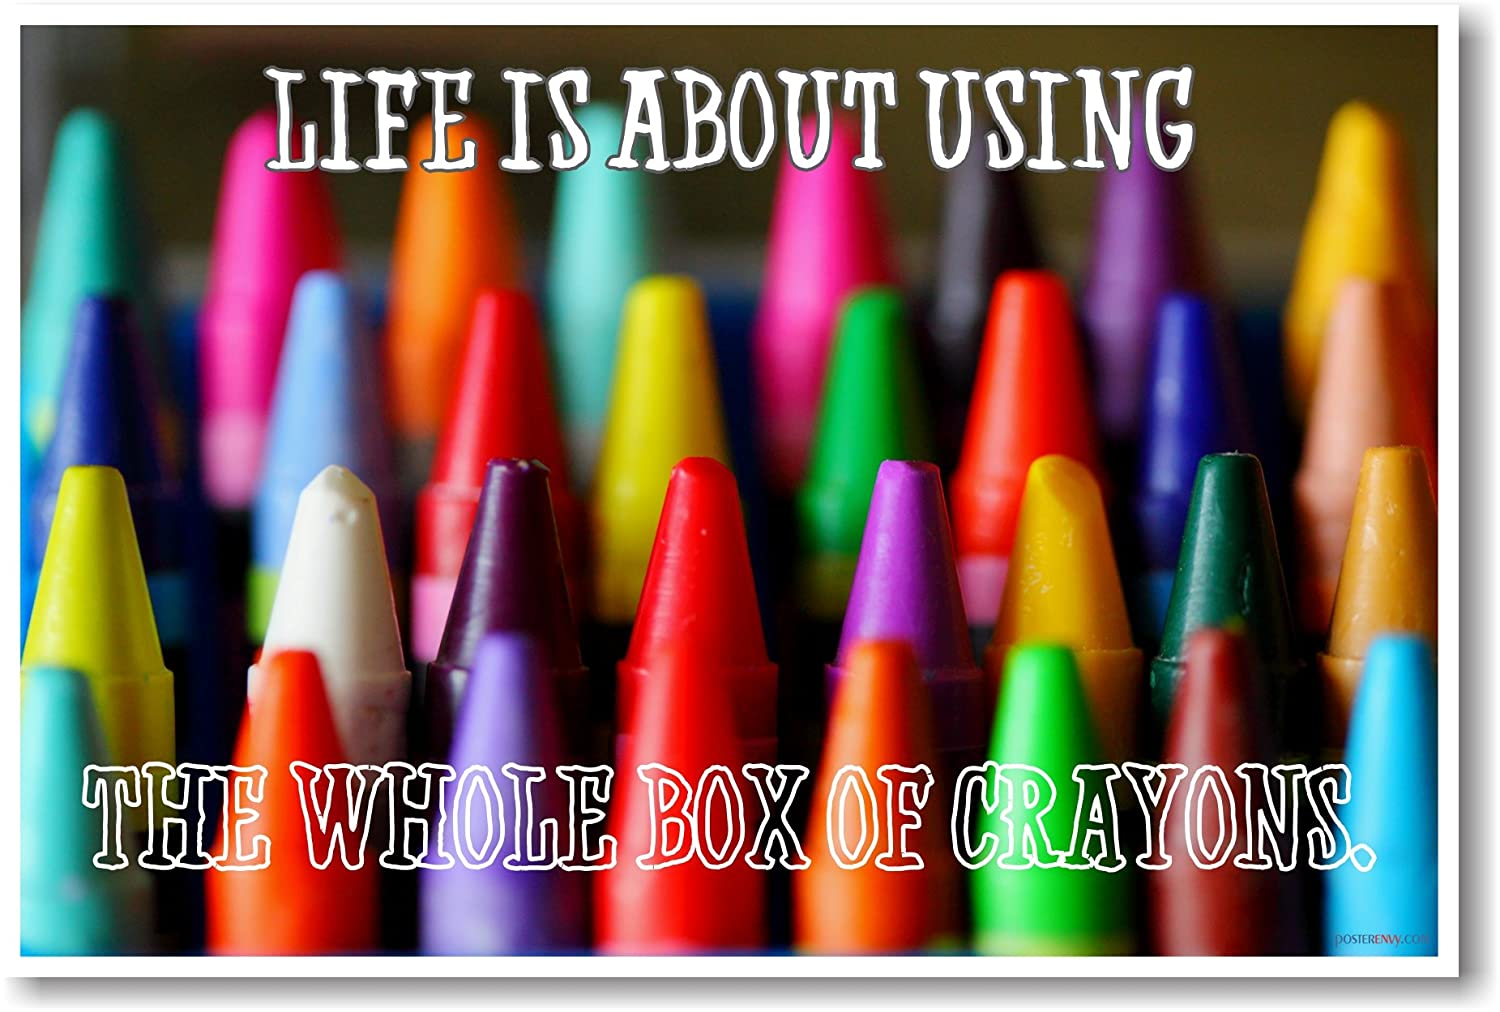 amazon com life is about using the whole box of crayons new